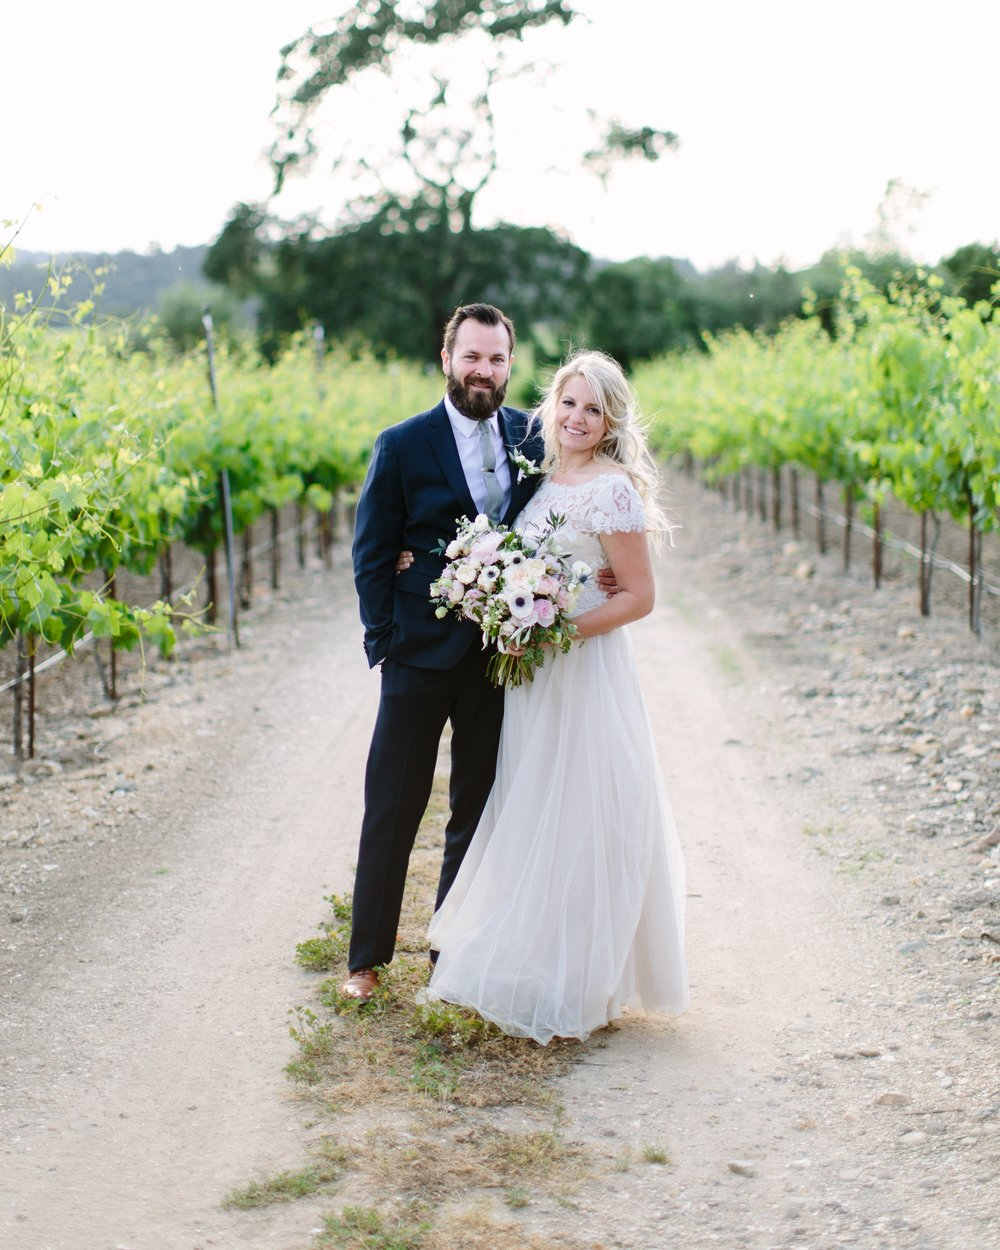 lindsey & brent - BELTANE RANCH WEDDING